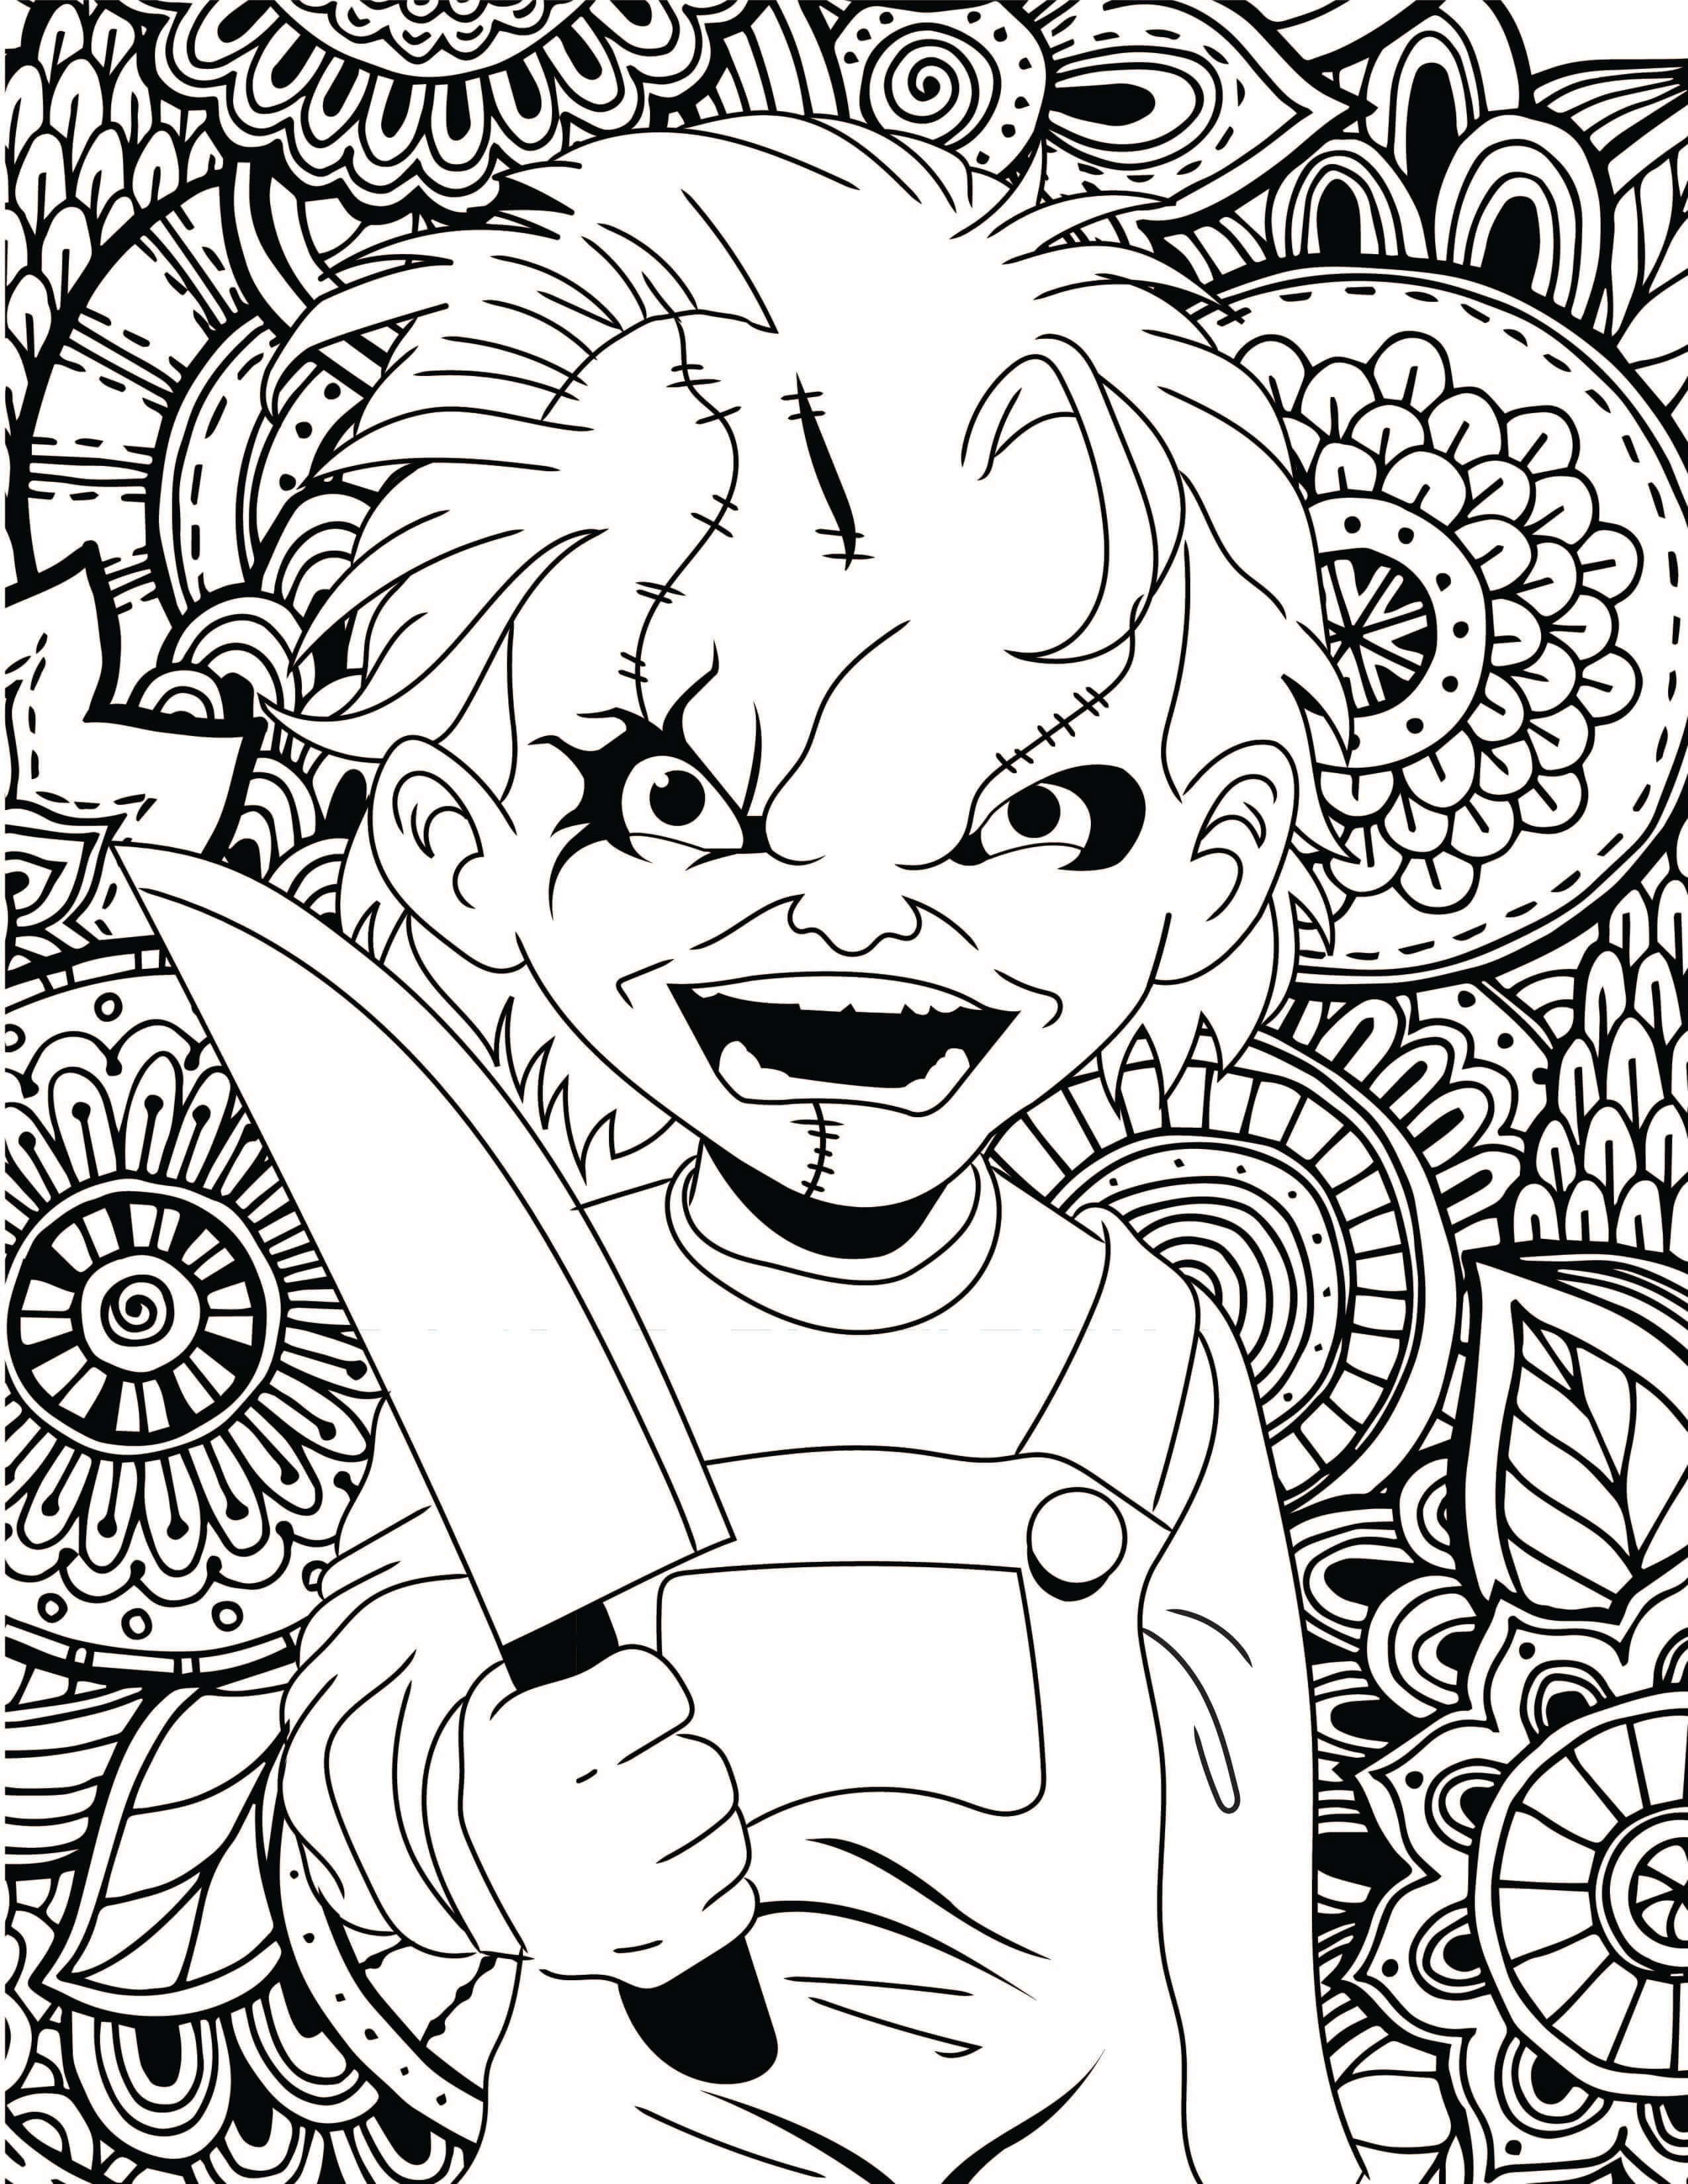 2550x3300 Clown Coloring Pages Preschool Scary Colouring Sheets Printable